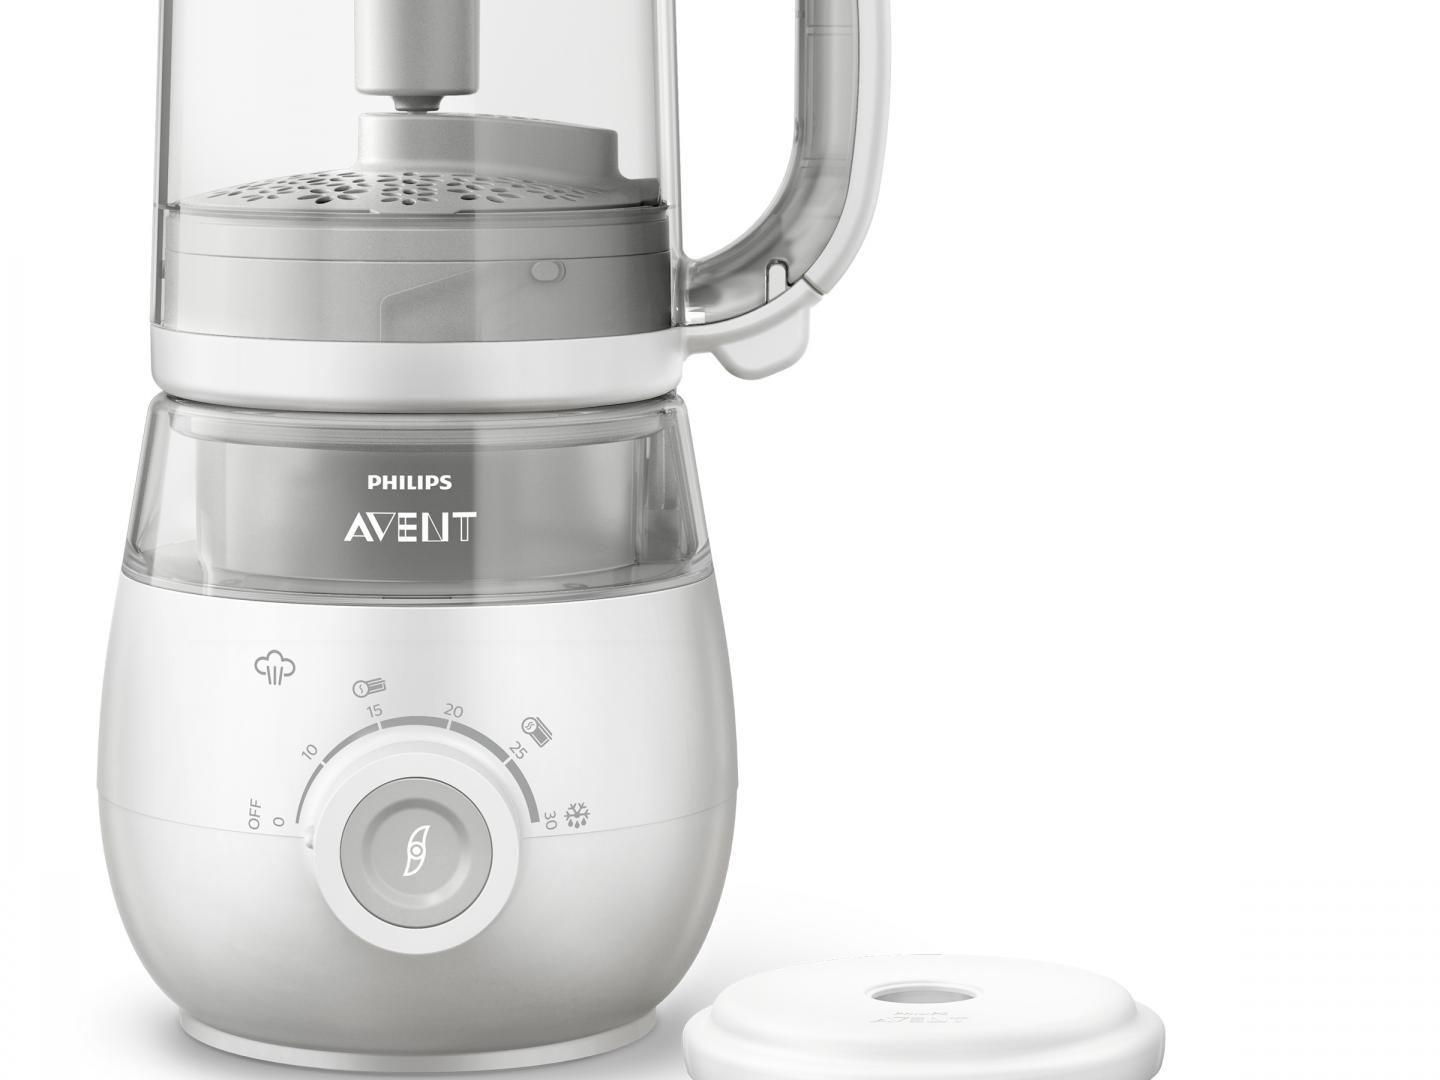 Philips Avent 4-in-1 Healthy Baby Food Maker Thumbnail